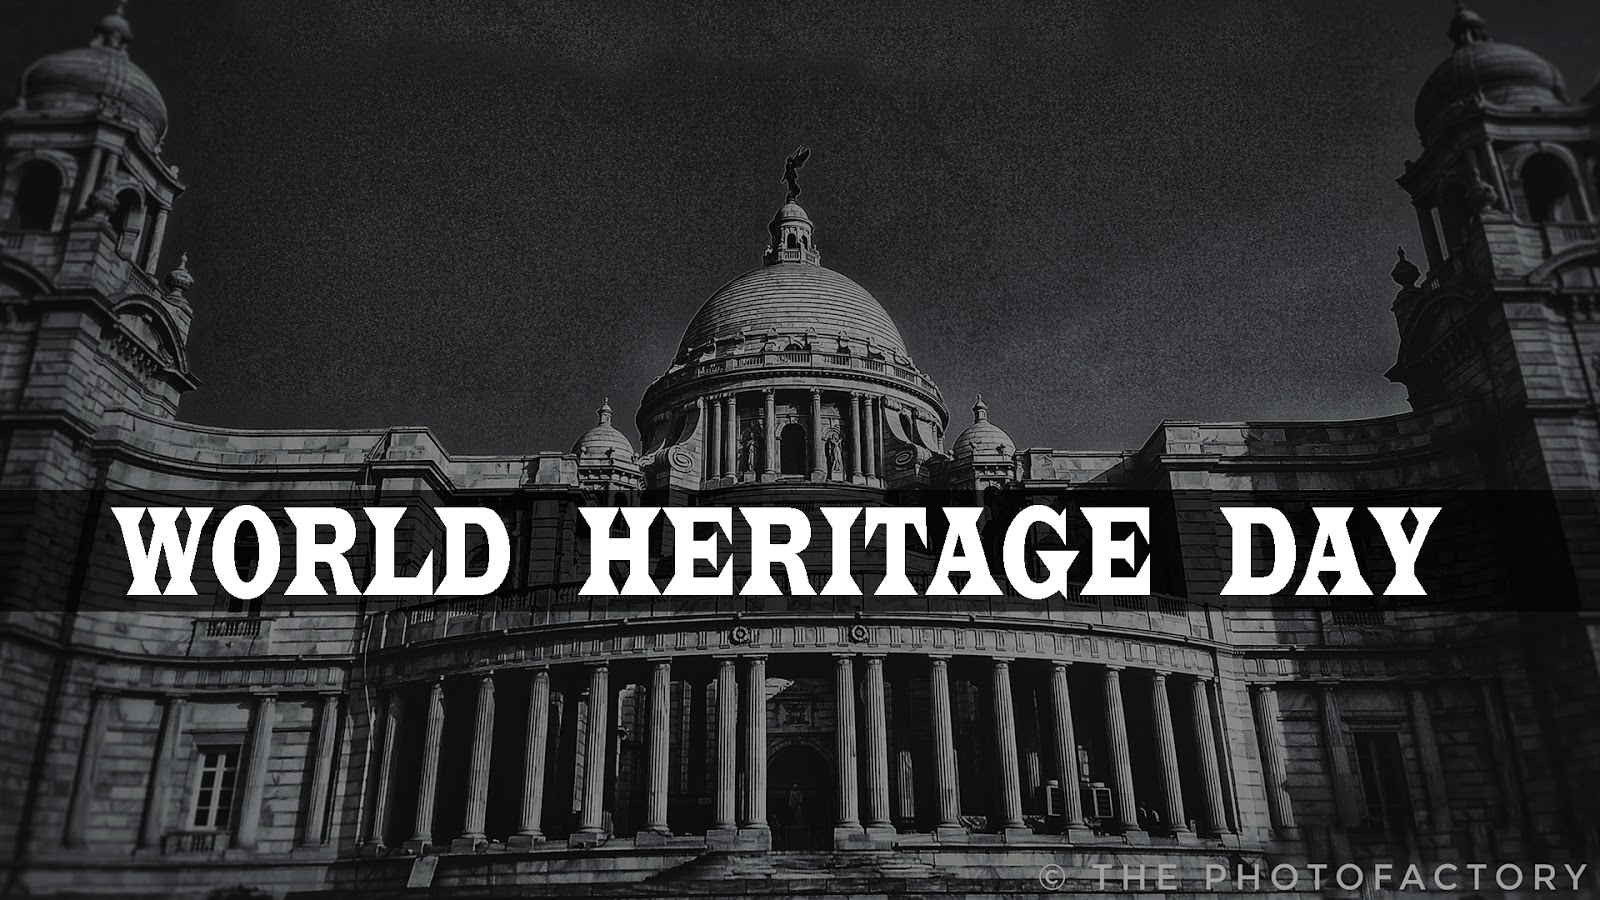 World Heritage day 2020 wishes images, quotes, photos, SMS